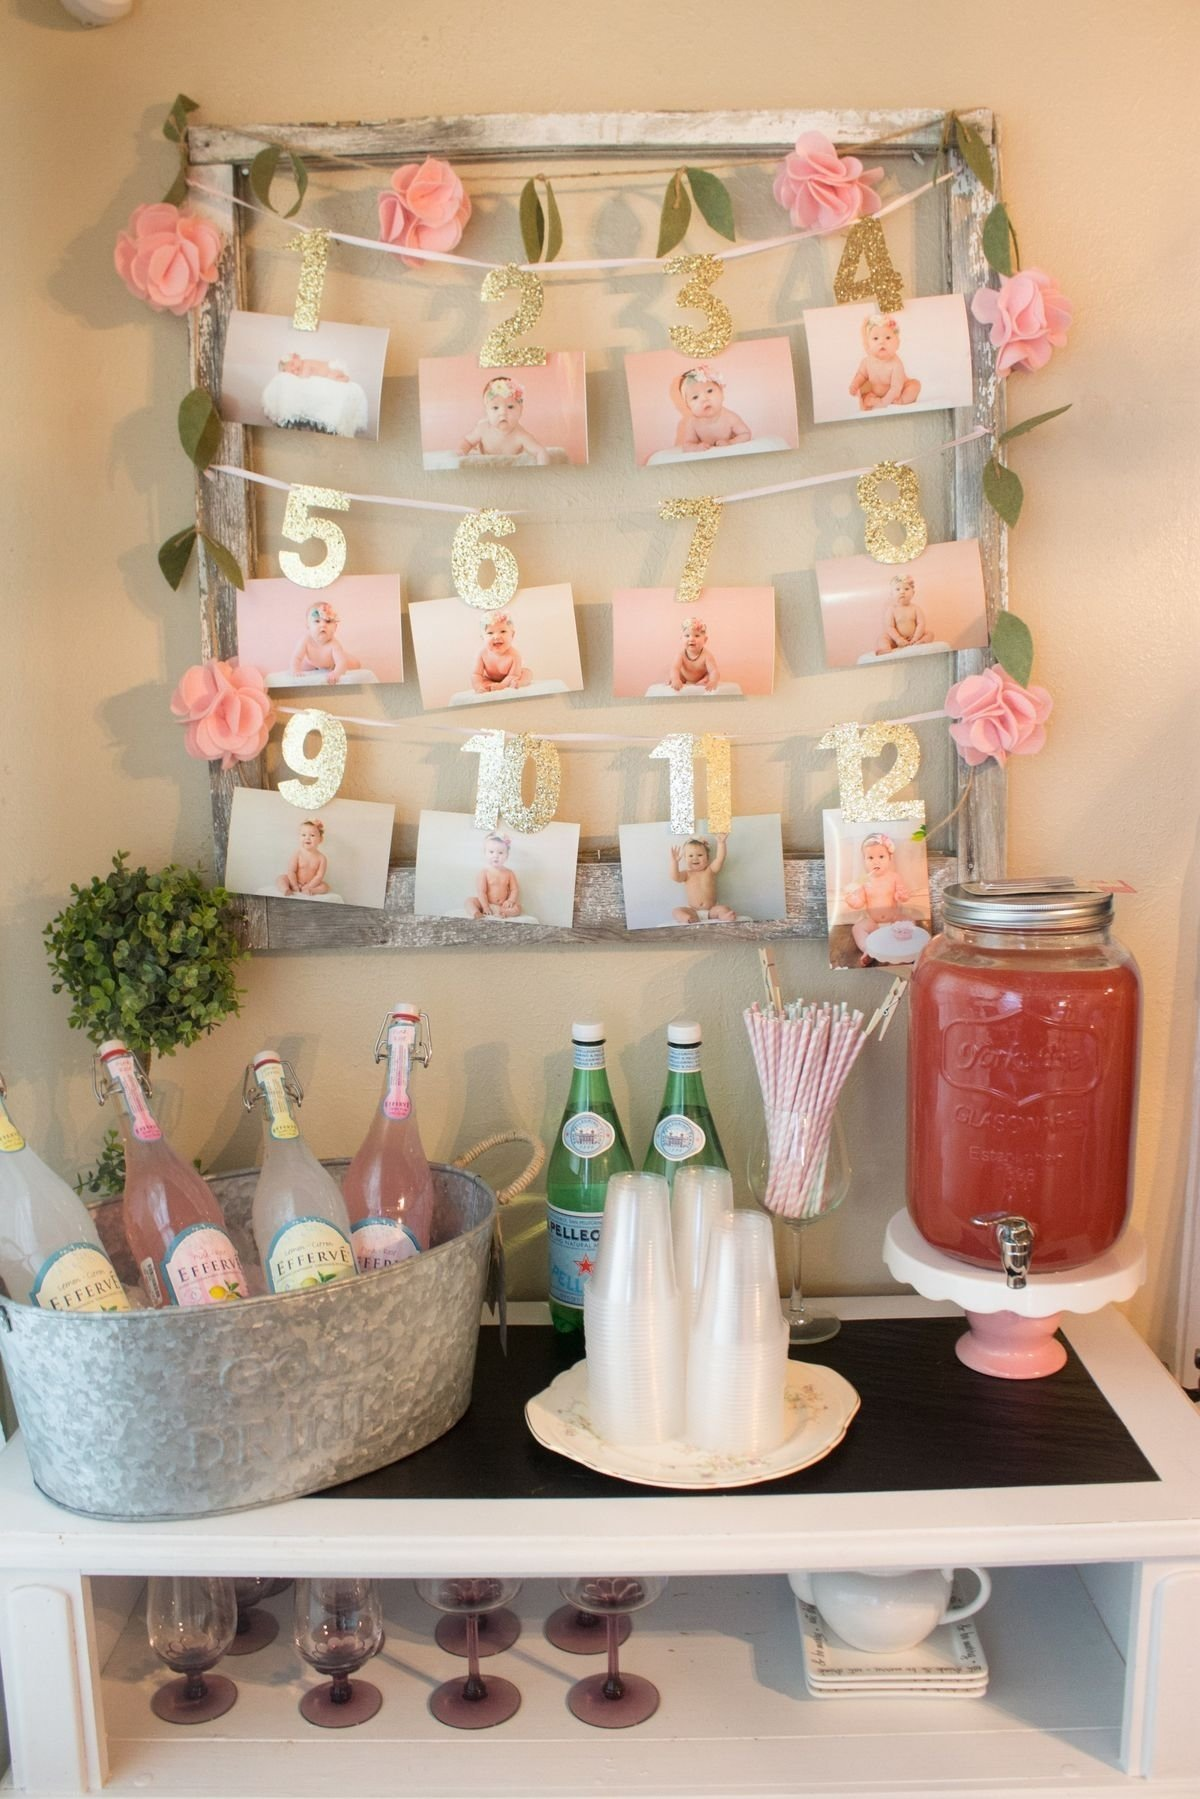 10 Famous One Year Birthday Party Ideas themes birthdayone year old baby birthday party ideas as well as 1 1 2020